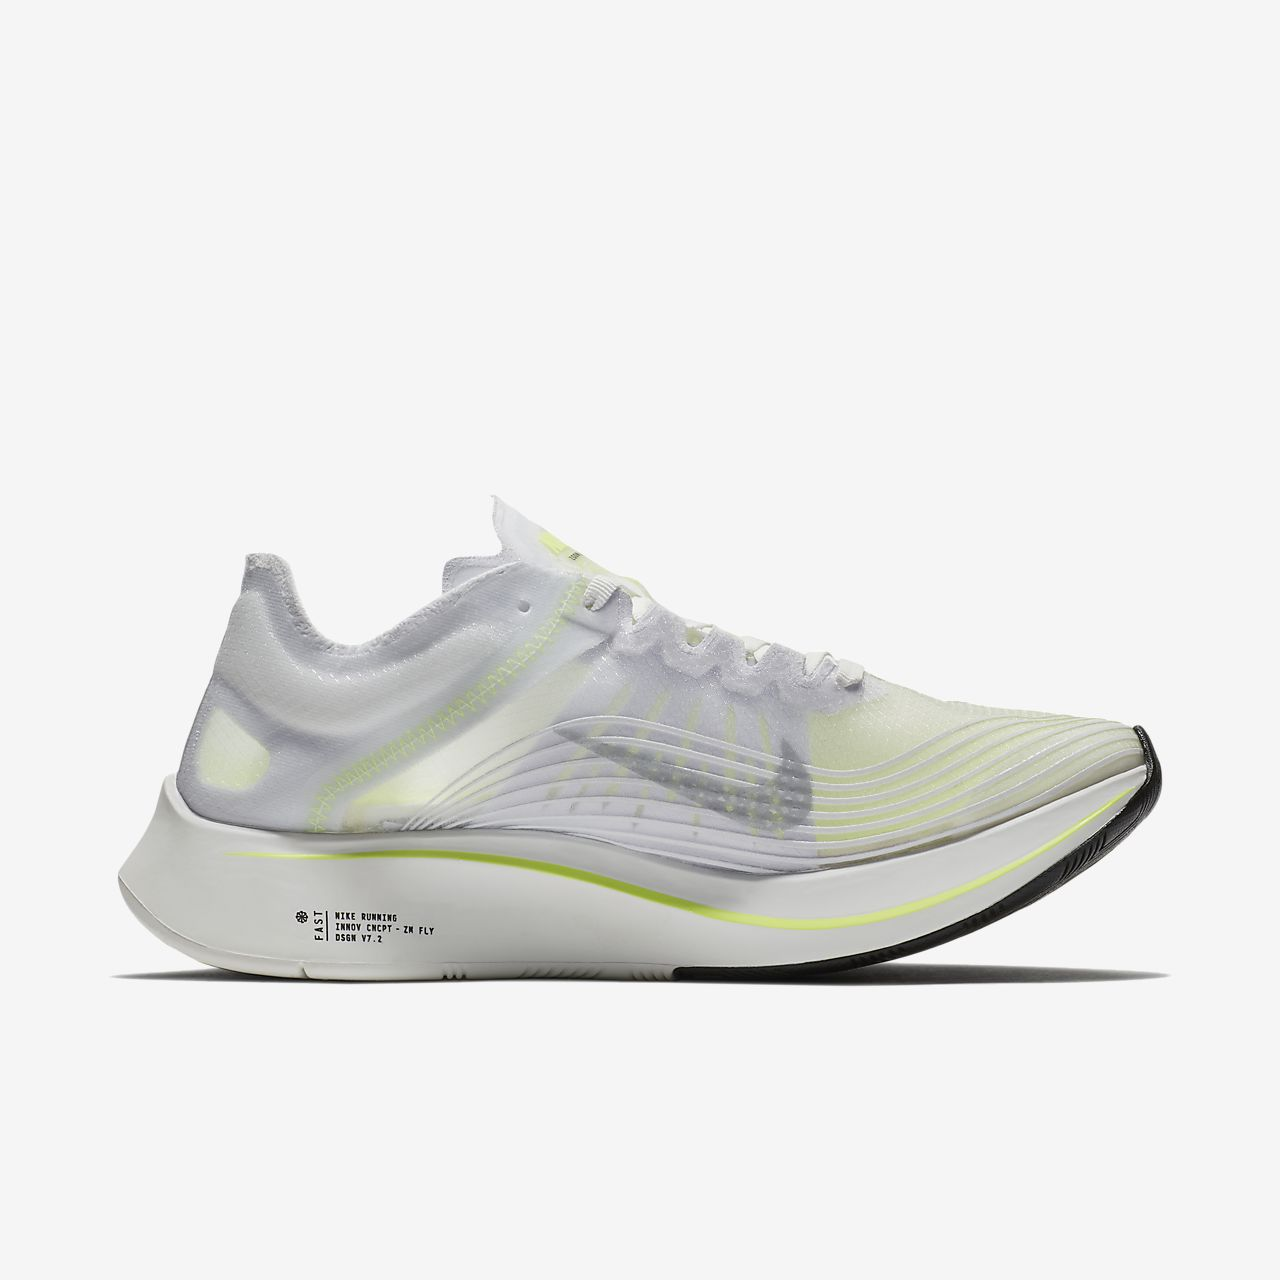 6bde83852e7b80 uk purple shoes women nikelab zoom fly sp